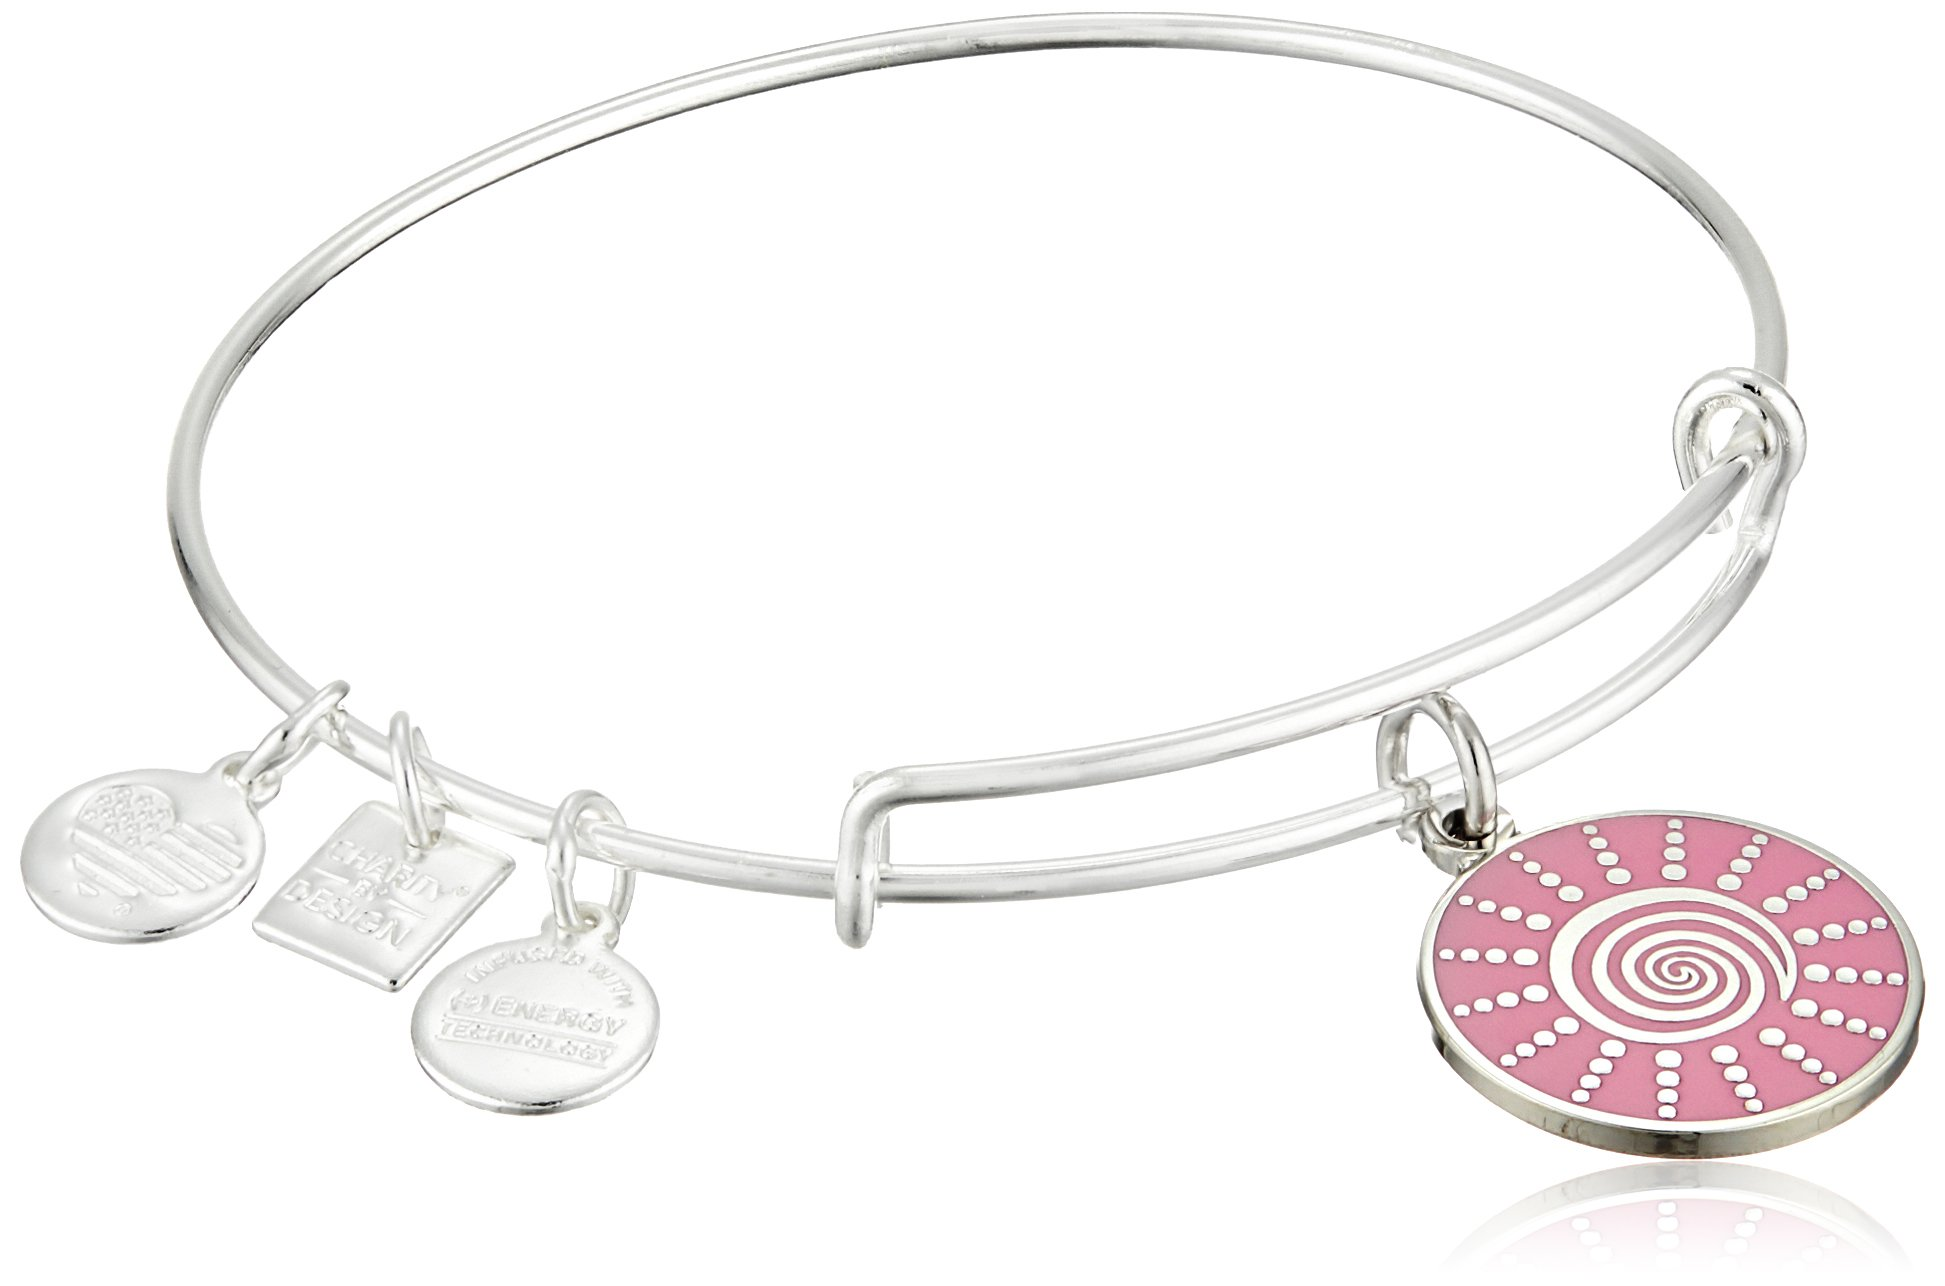 Alex and Ani Women's Charity by Design - Spiral Sun Expandable Charm Bangle Bracelet Shiny Silver Bangle Bracelet One Size